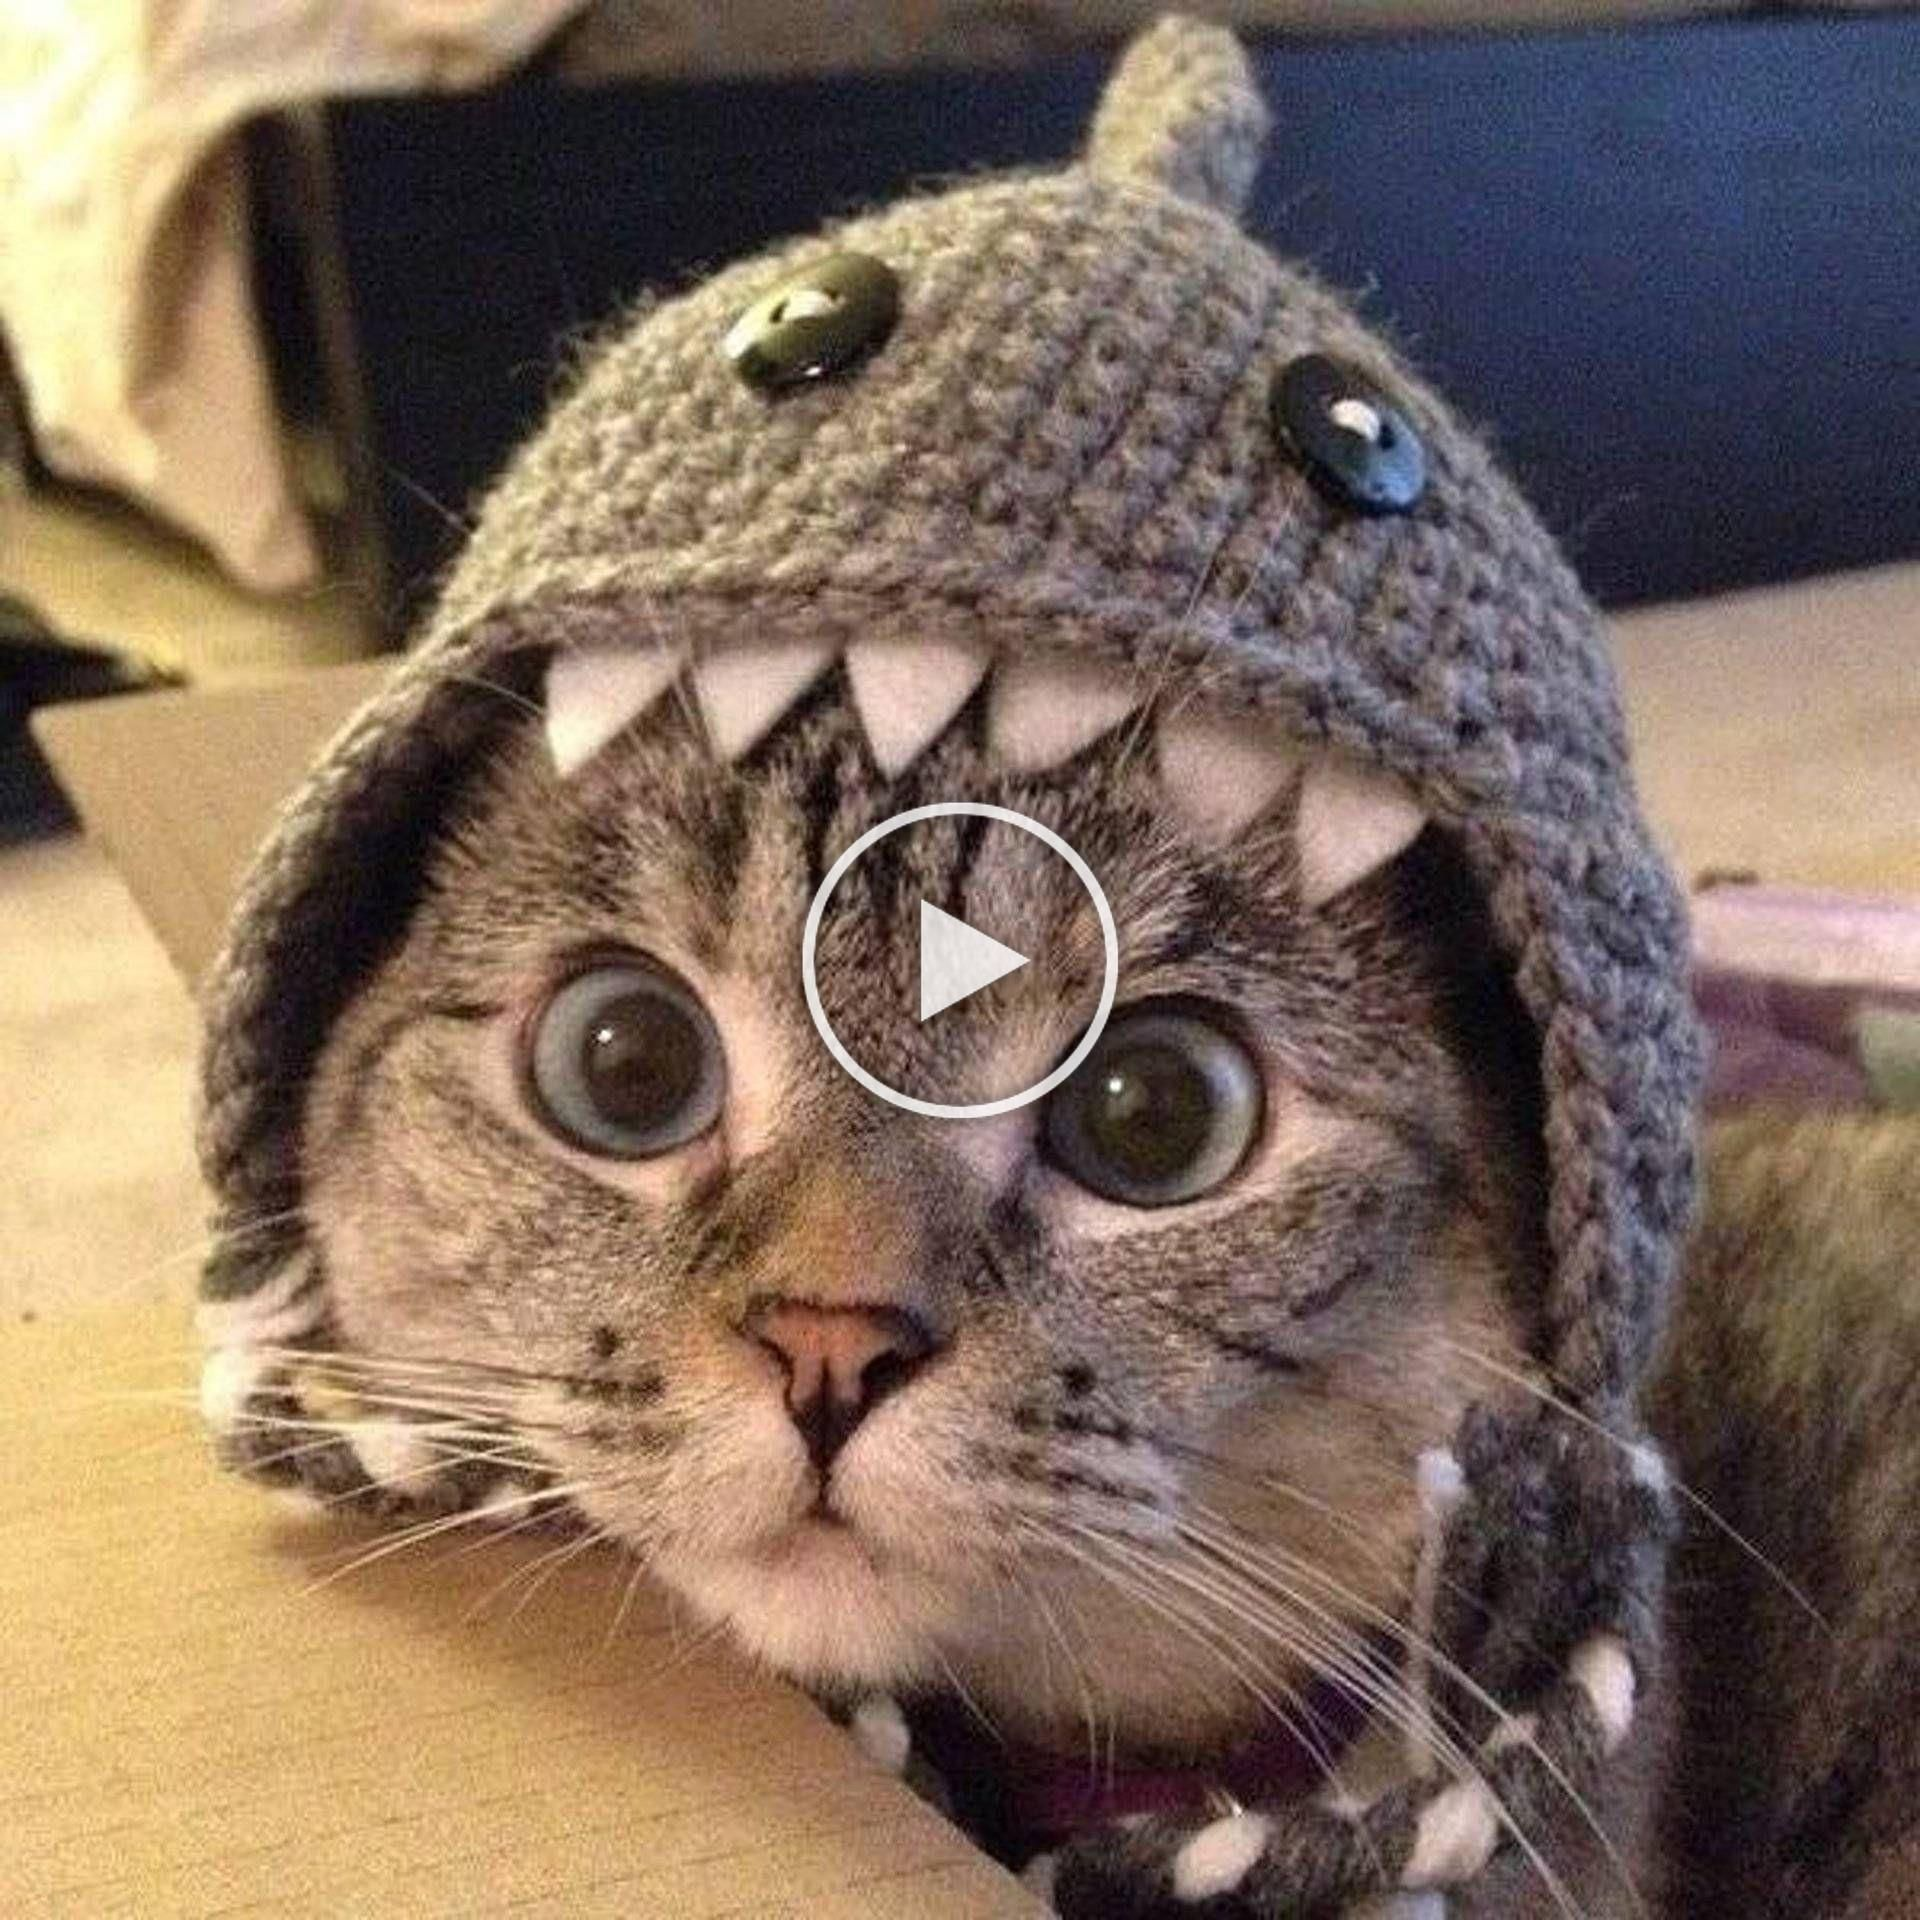 Mews Funny cat picture collection! Hope the weather is not as grey and cloudy as it is here! But j